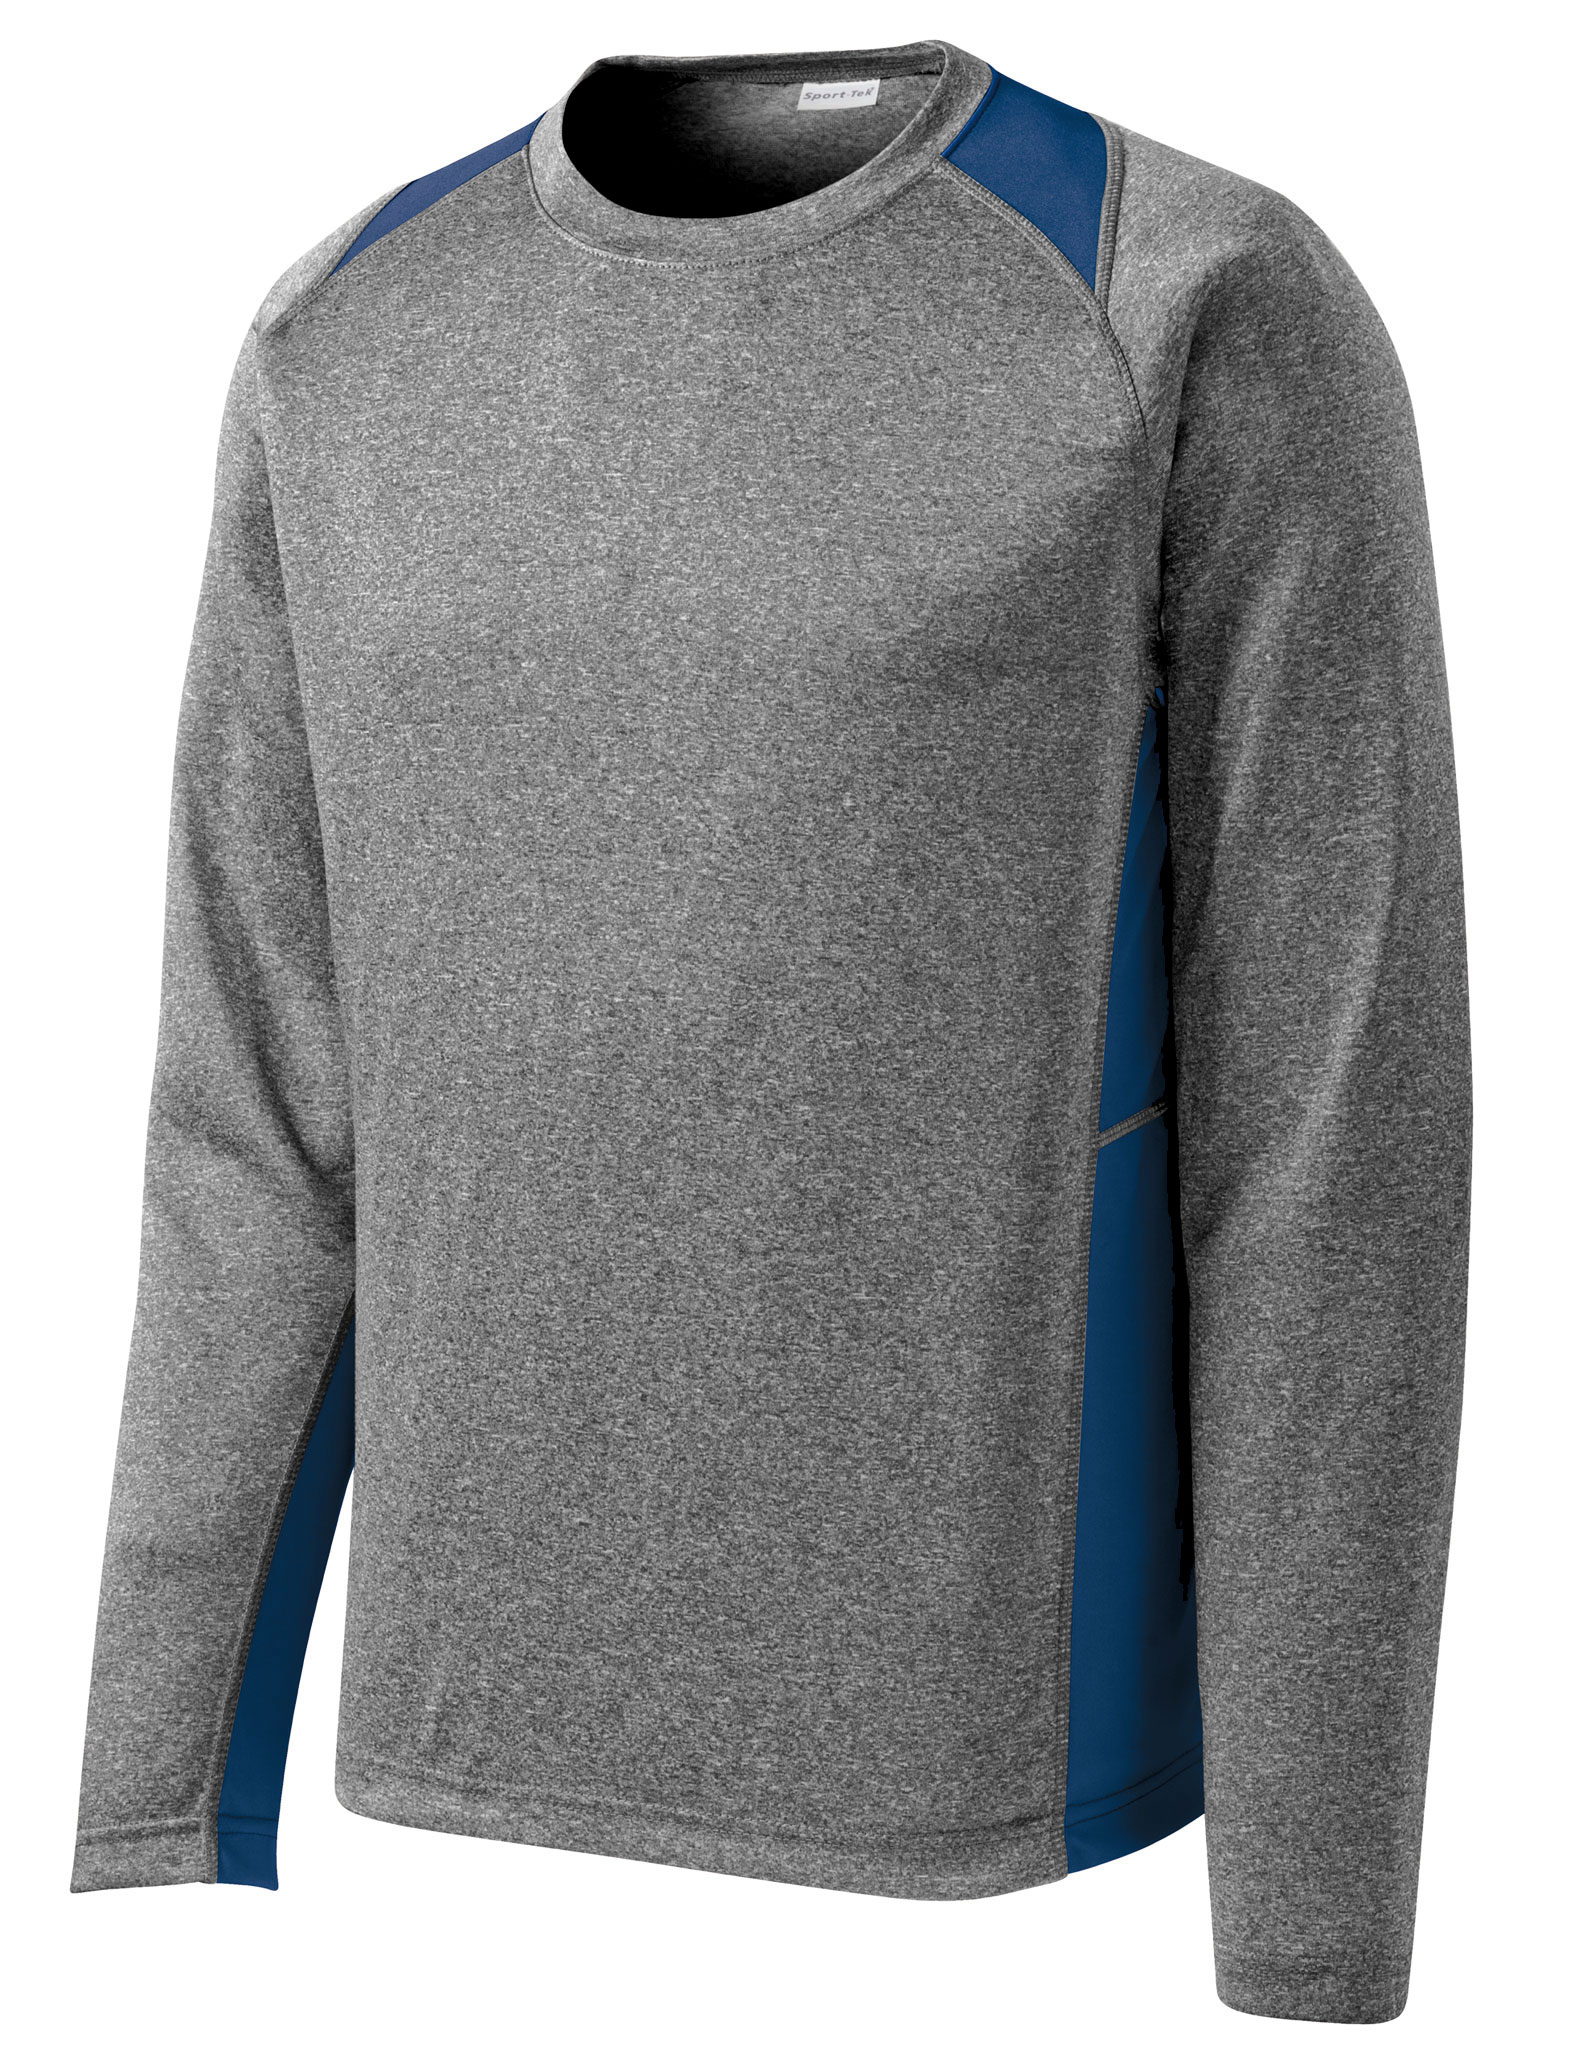 Long Sleeve Heather Colorblock Contender� Tee